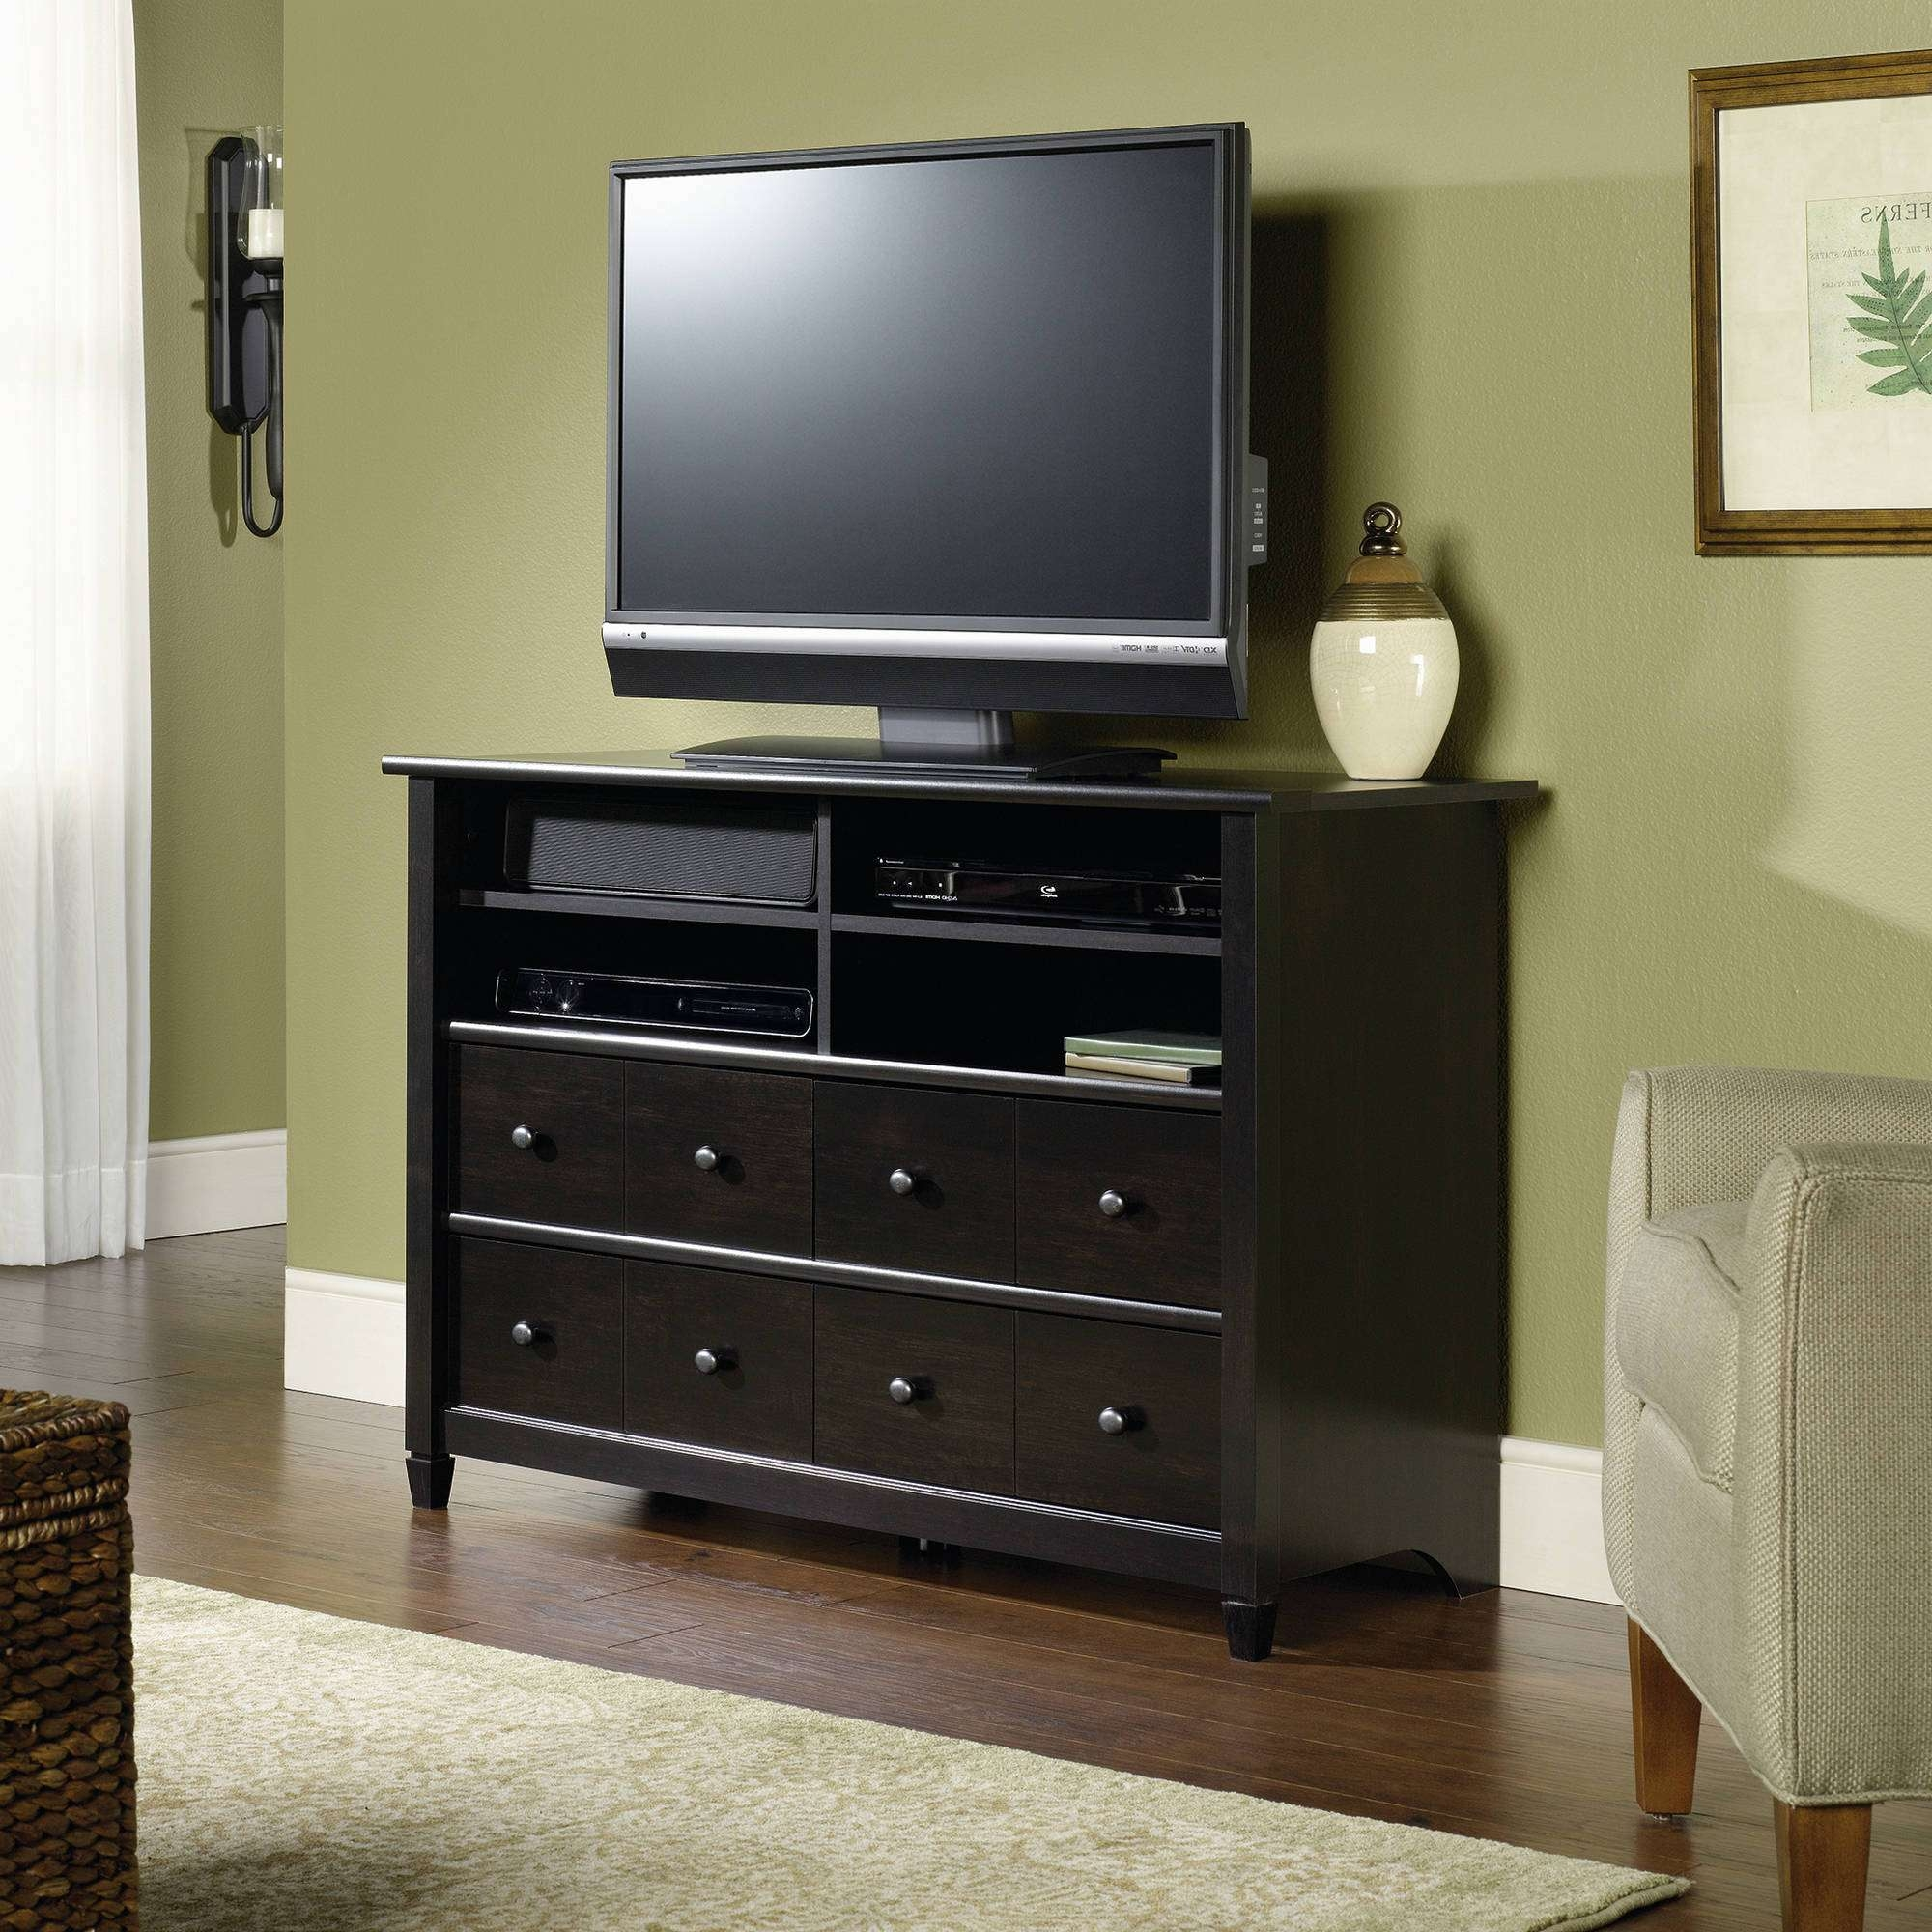 Living Room : Marvelous Costco Tv Stands For Flat Screens Corner With Regard To Tall Tv Stands For Flat Screen (View 5 of 15)